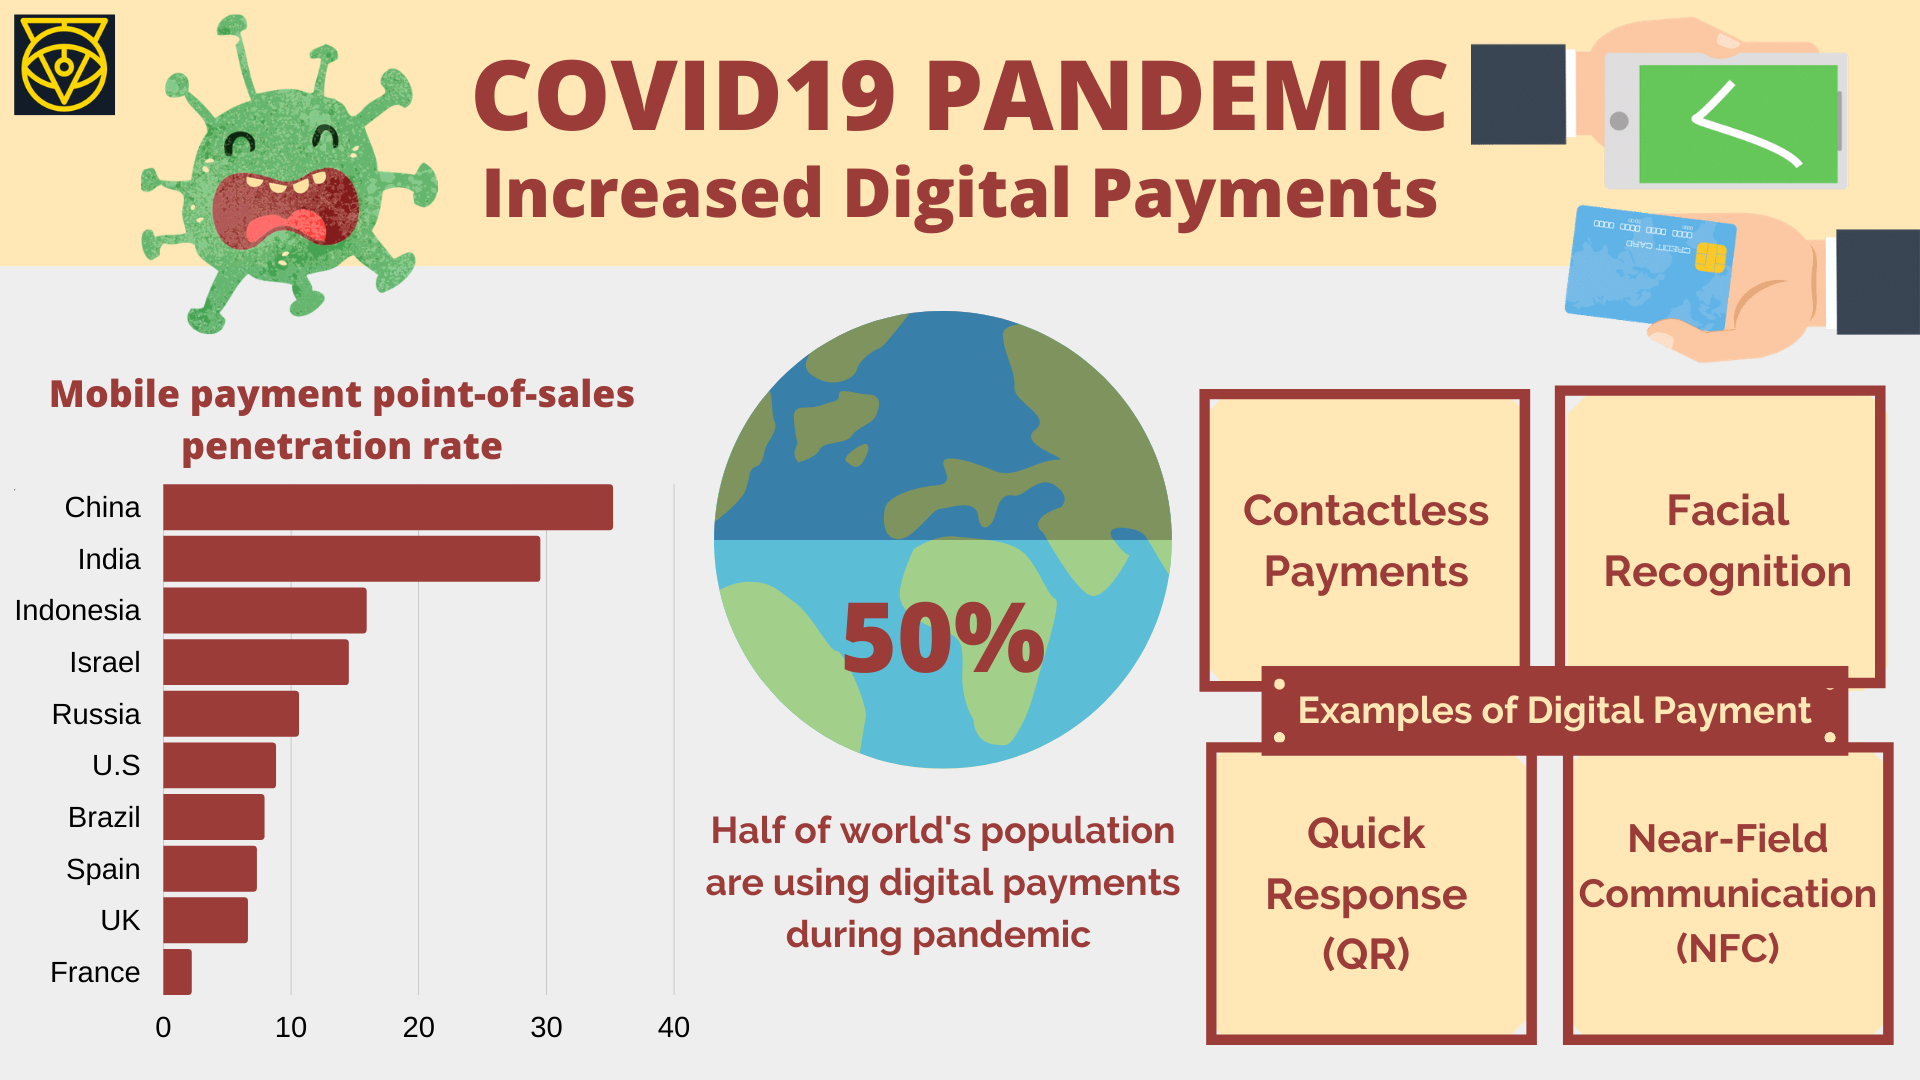 Covid19 Pandemic Increased Digital Payments